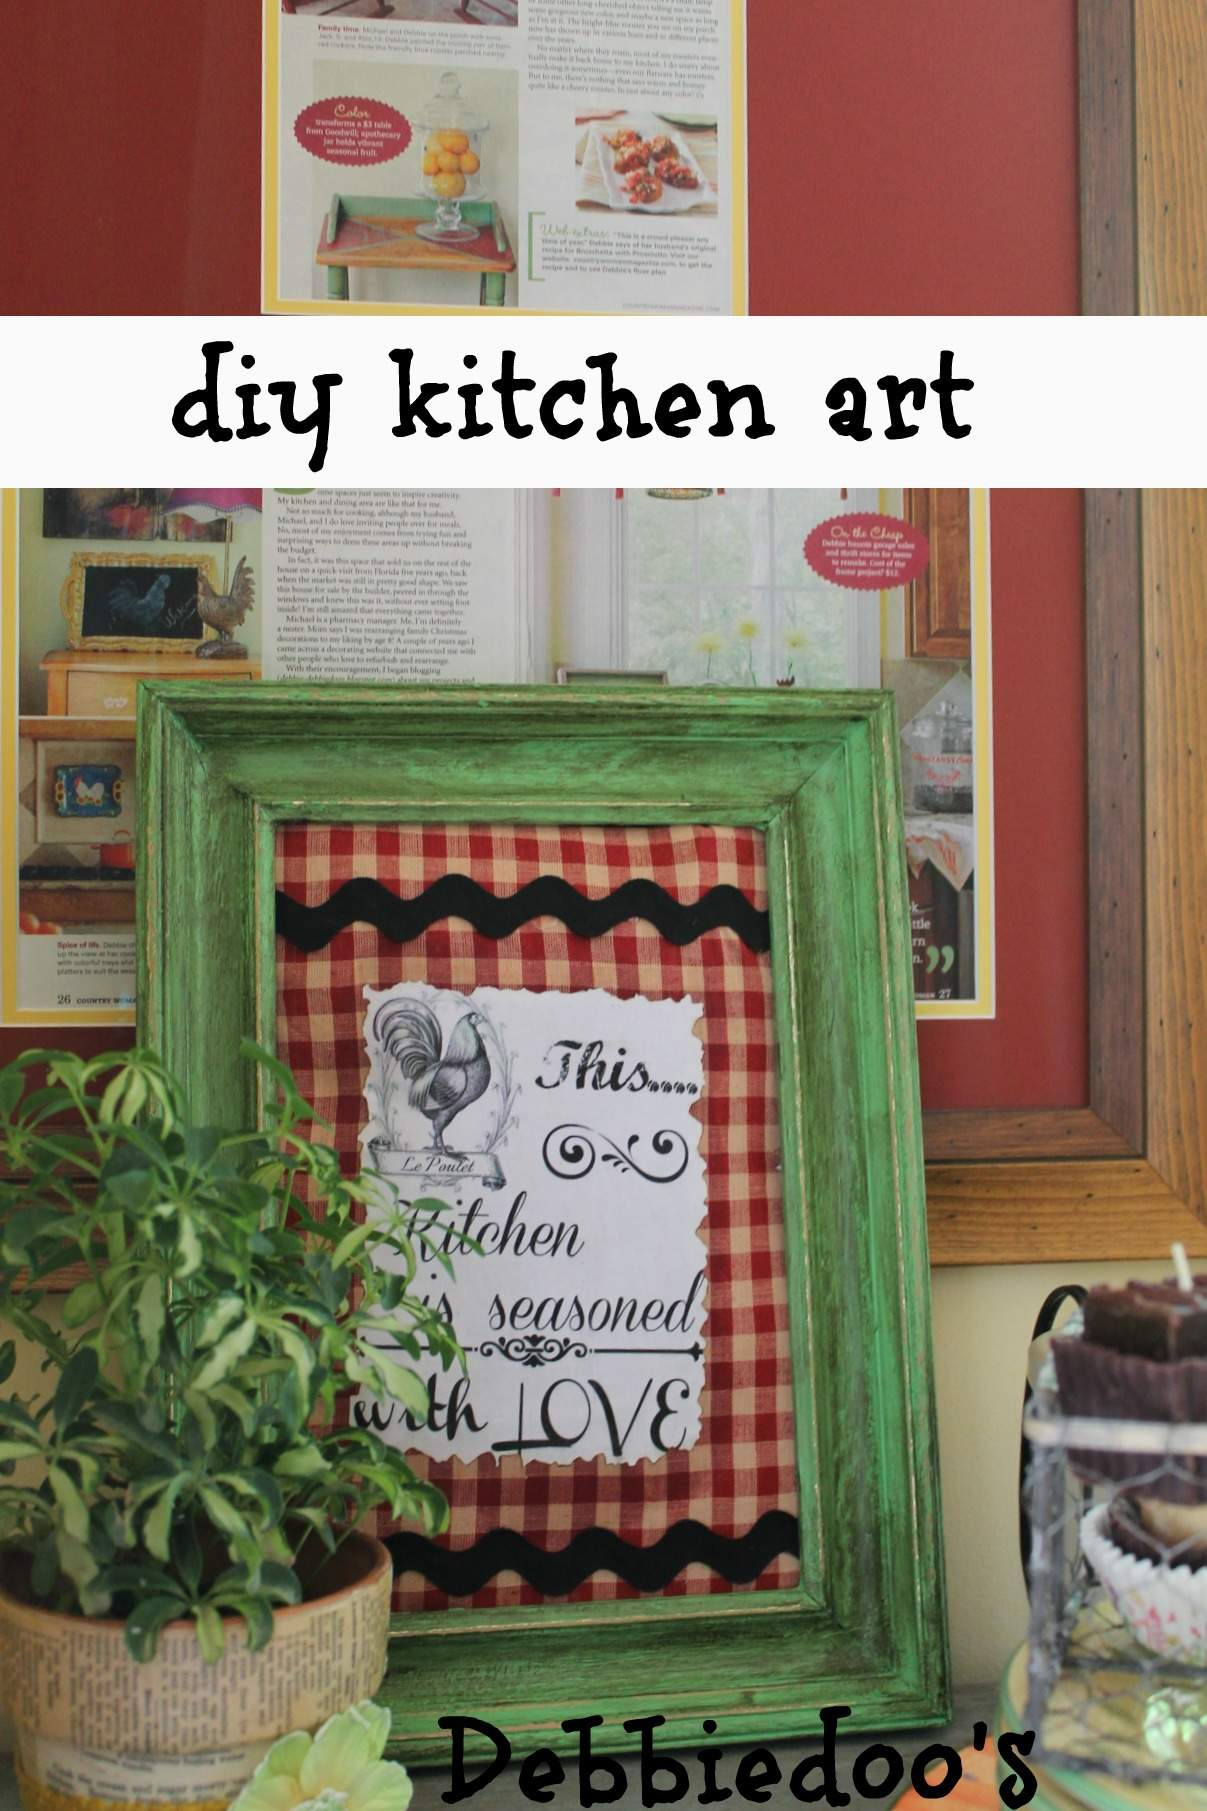 10 Kitchen And Home Decor Items Every 20 Something Needs: 10 Easy Diy Kitchen Craft Decor Ideas